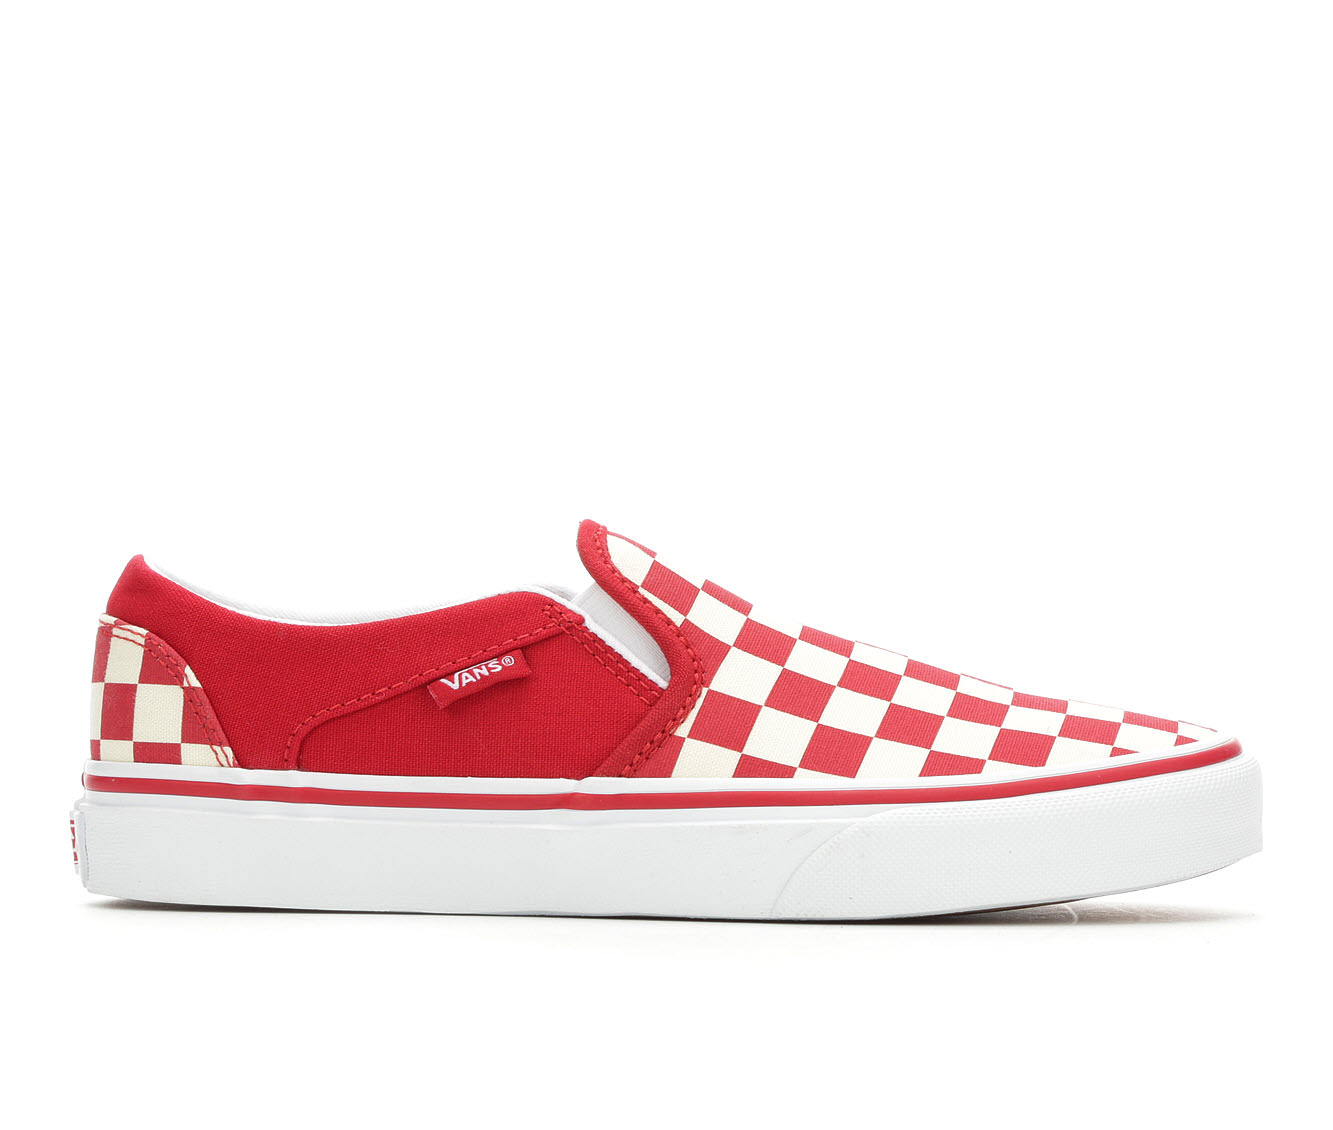 Vans Asher Women's Athletic Shoe (Red)